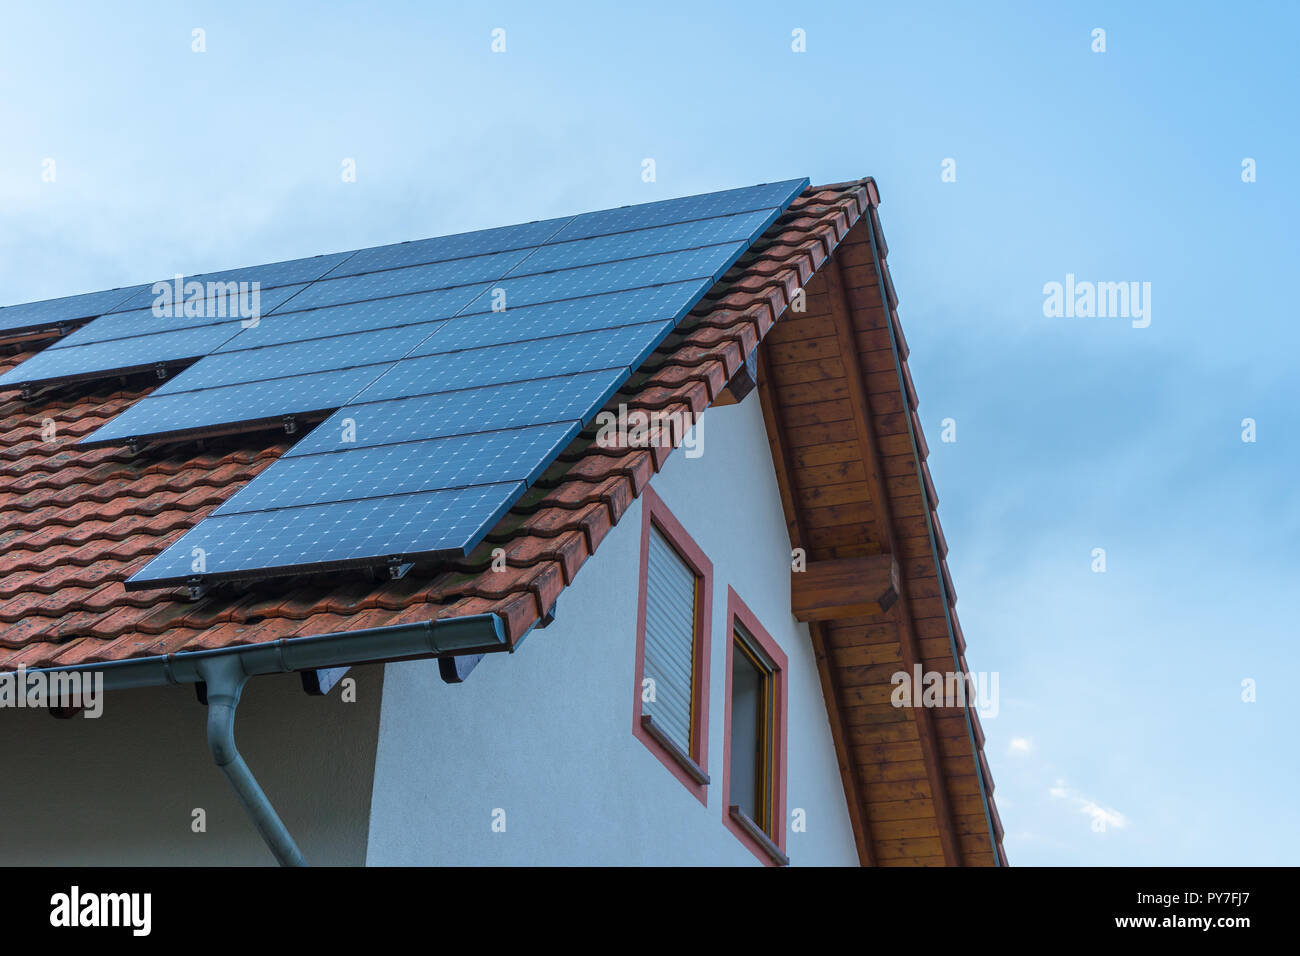 Solar panel construction on red roof of a house - Stock Image